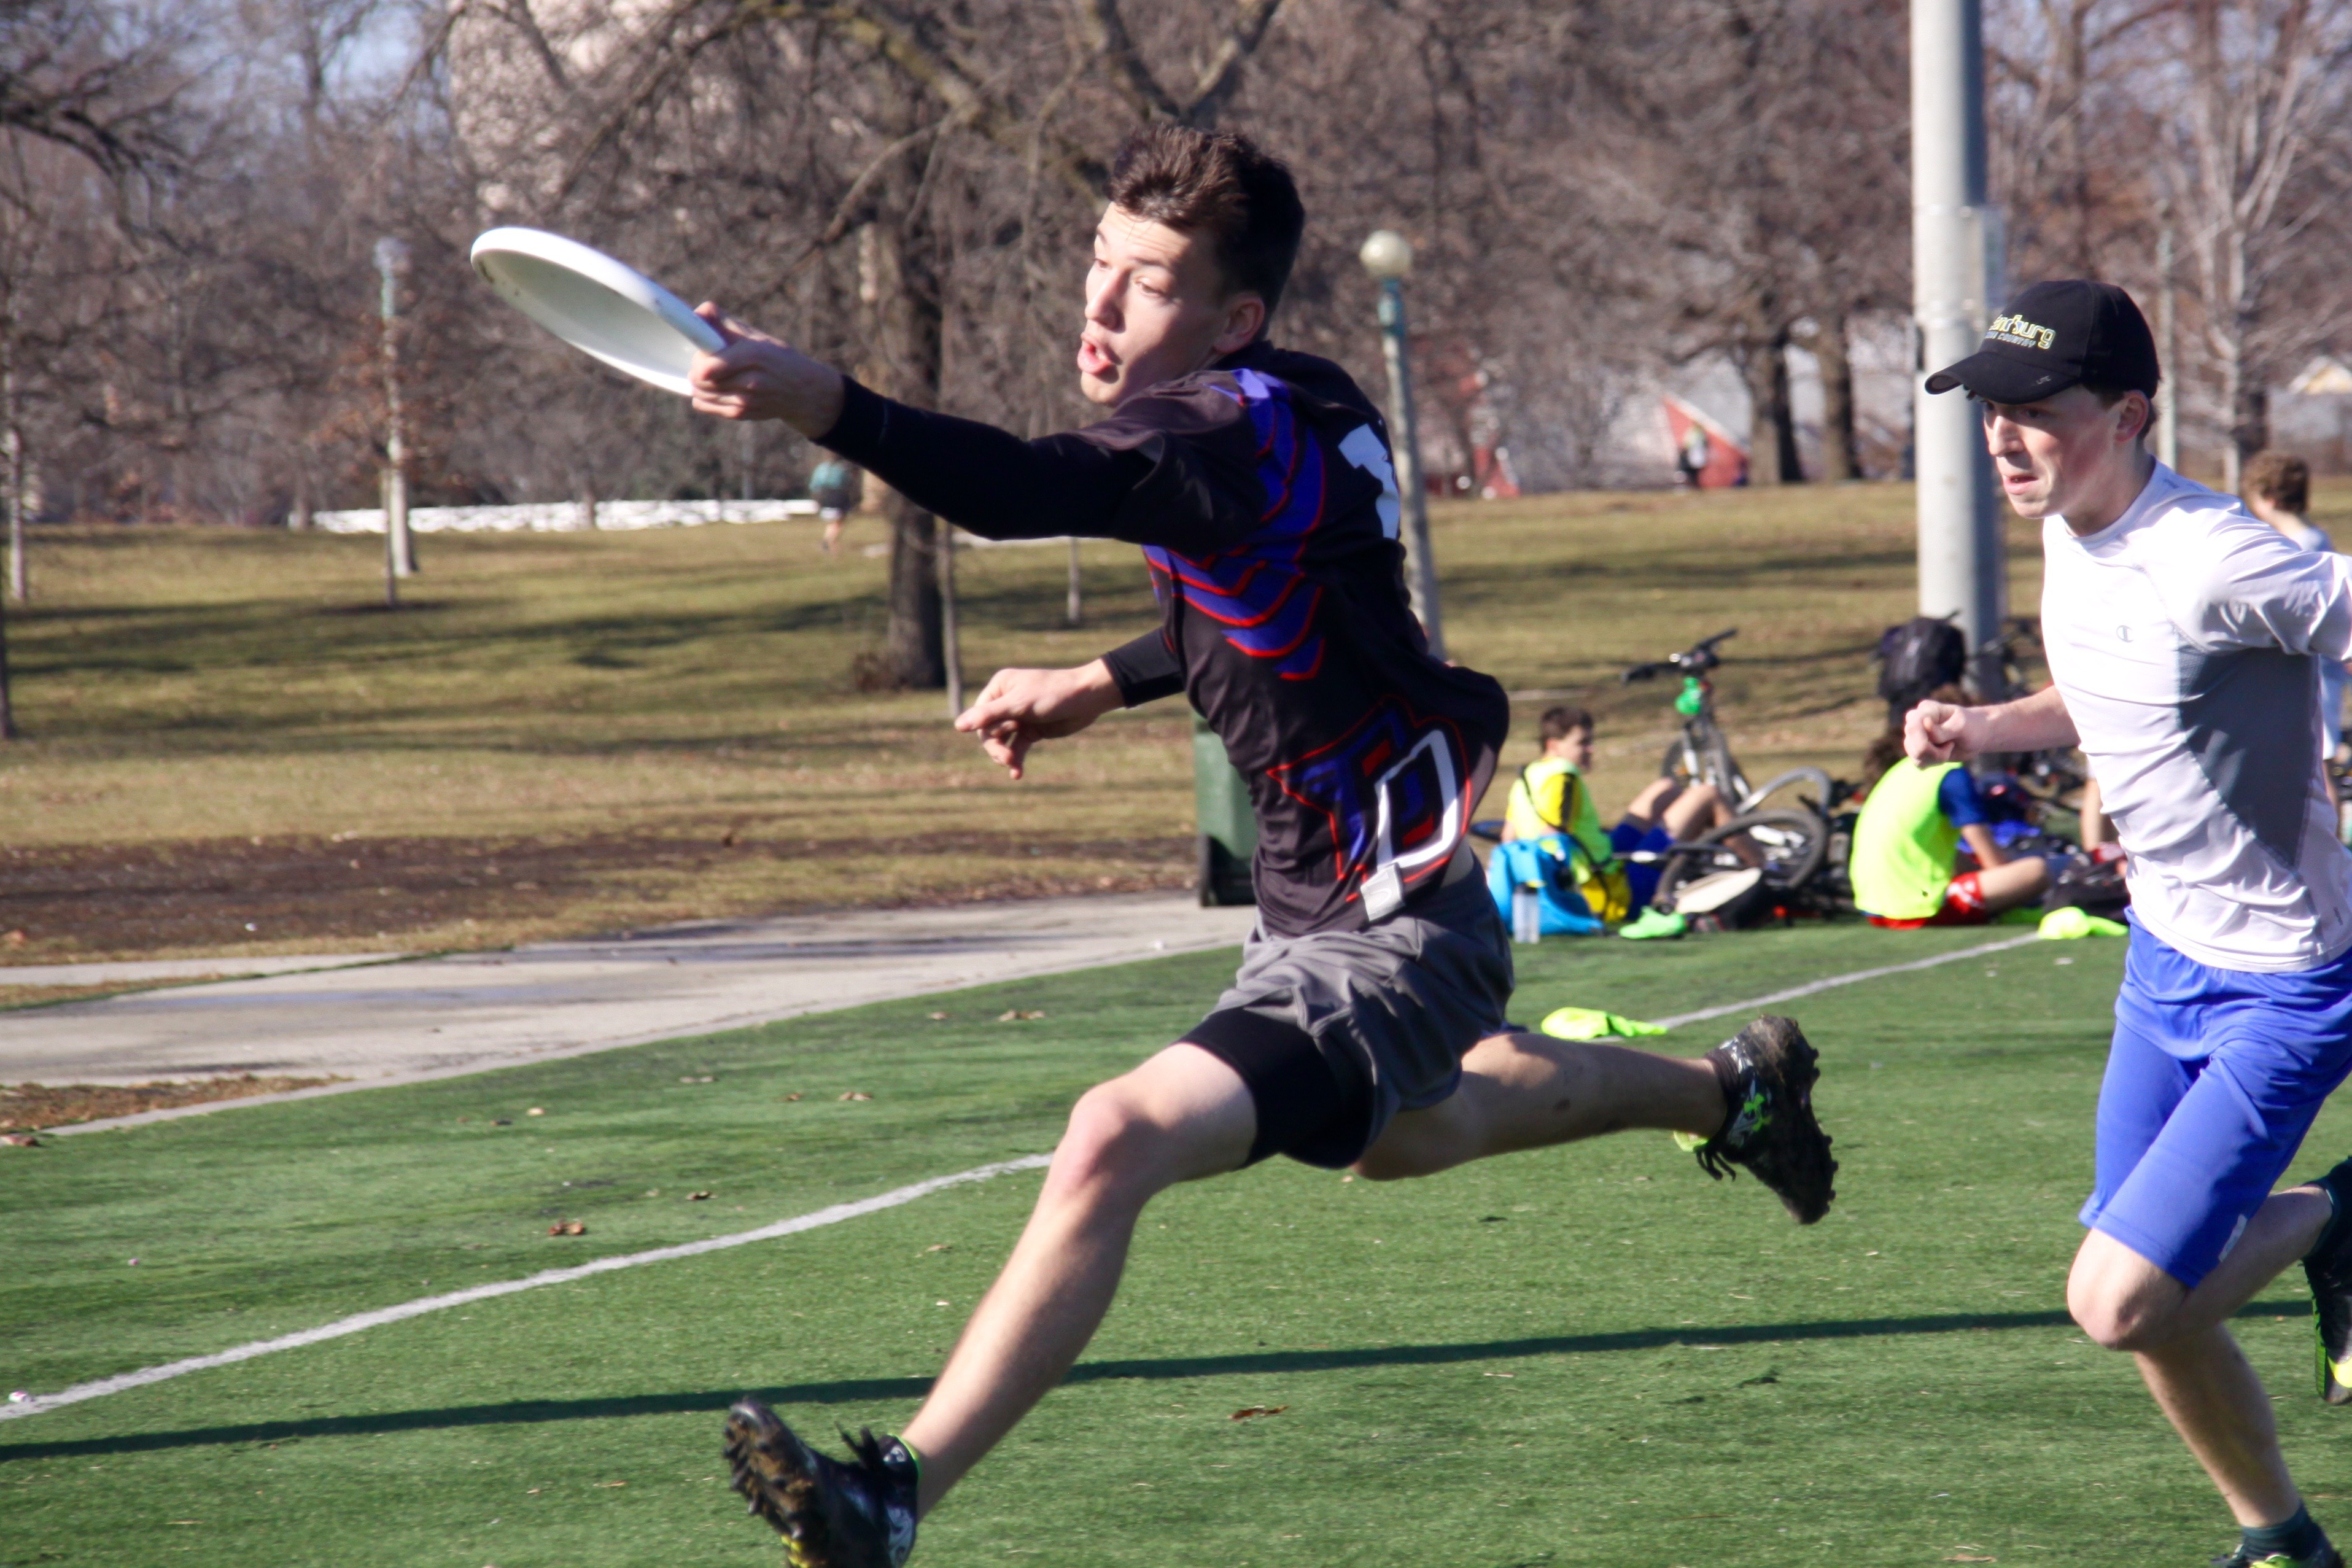 Jake Dremann catches a throw as Nick Carollo chases him down during a DePaul Ultimate Club practice on Jan. 21, 2017. (Photo/Ben Rains)